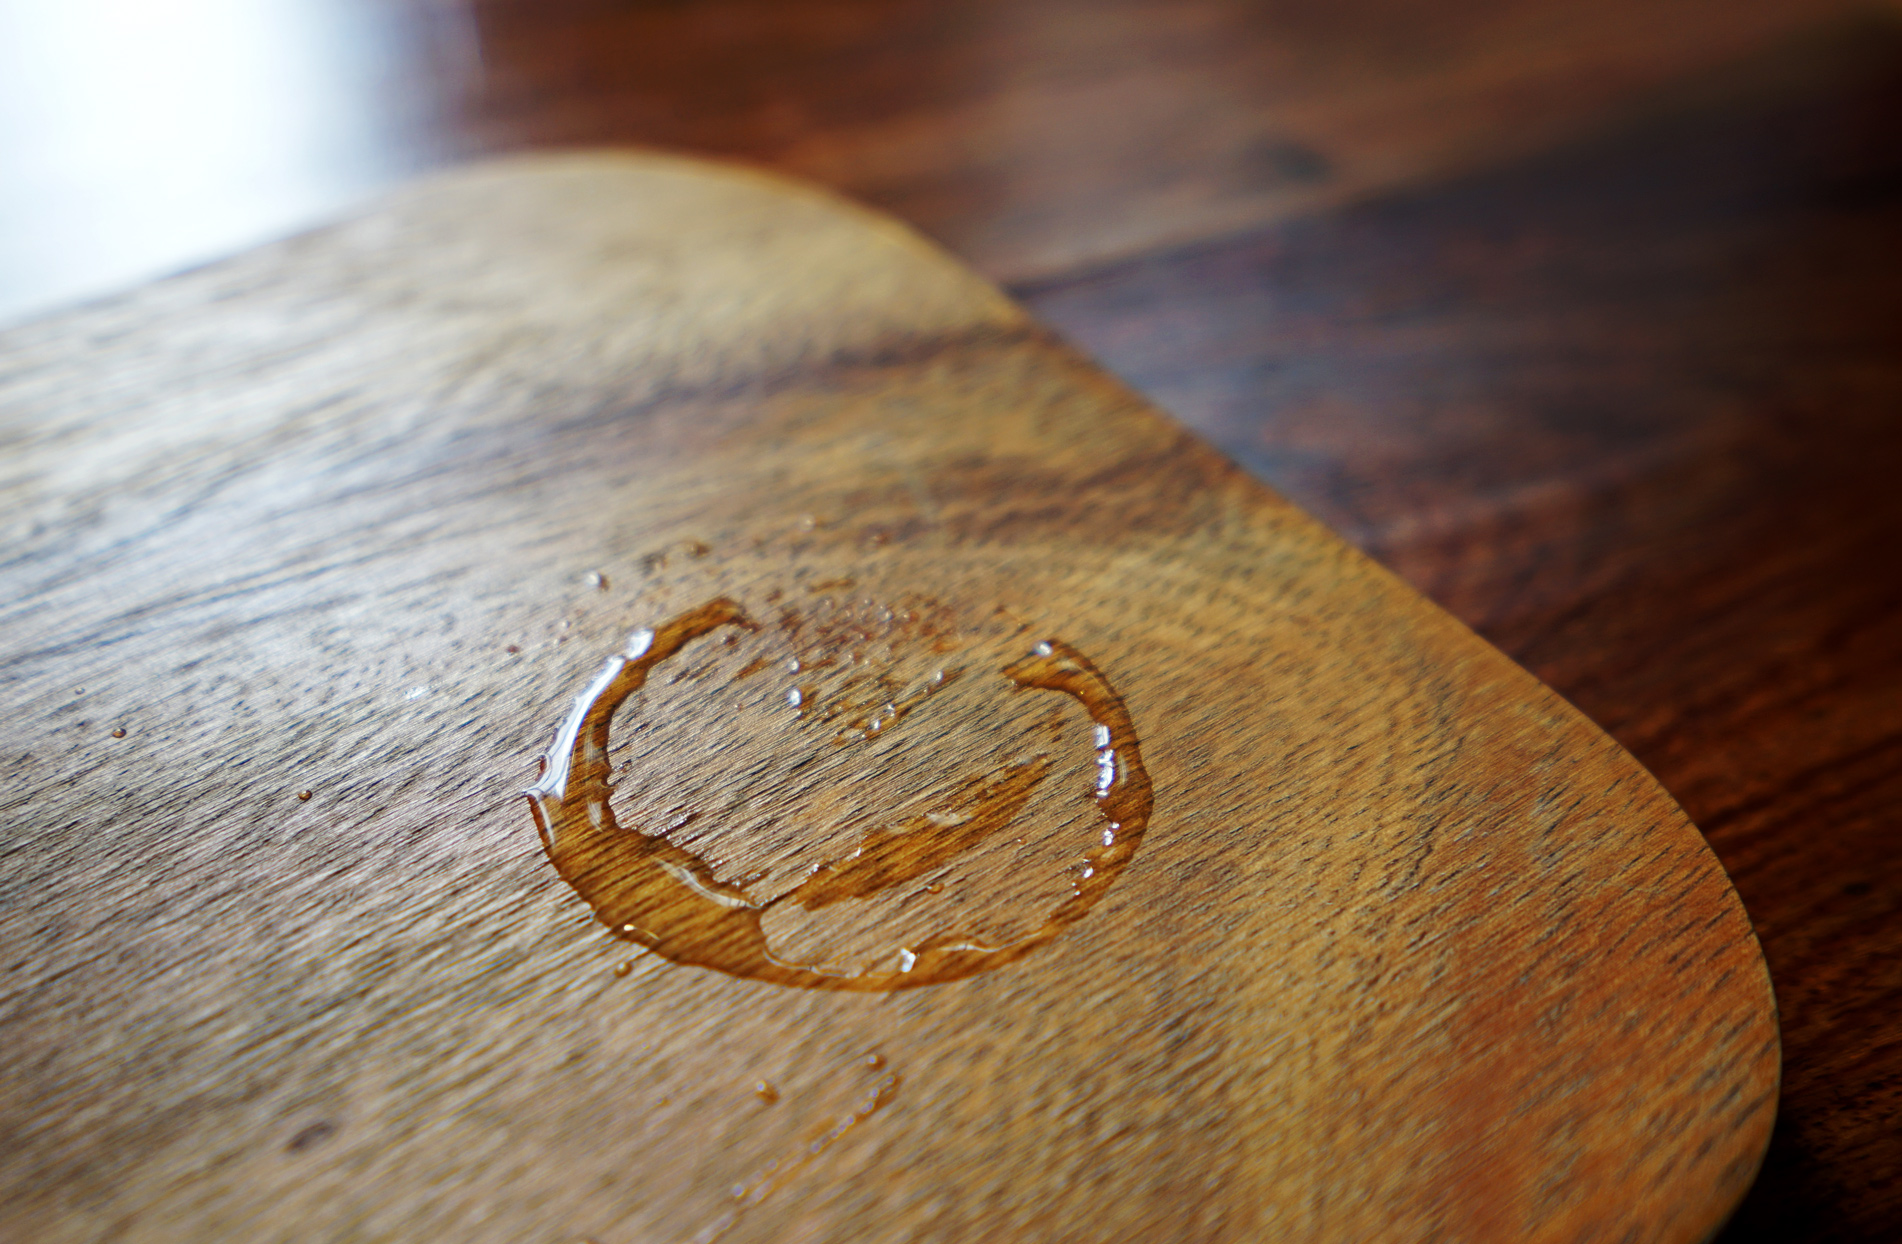 water in from glass on on wooden surface that could become of a stain